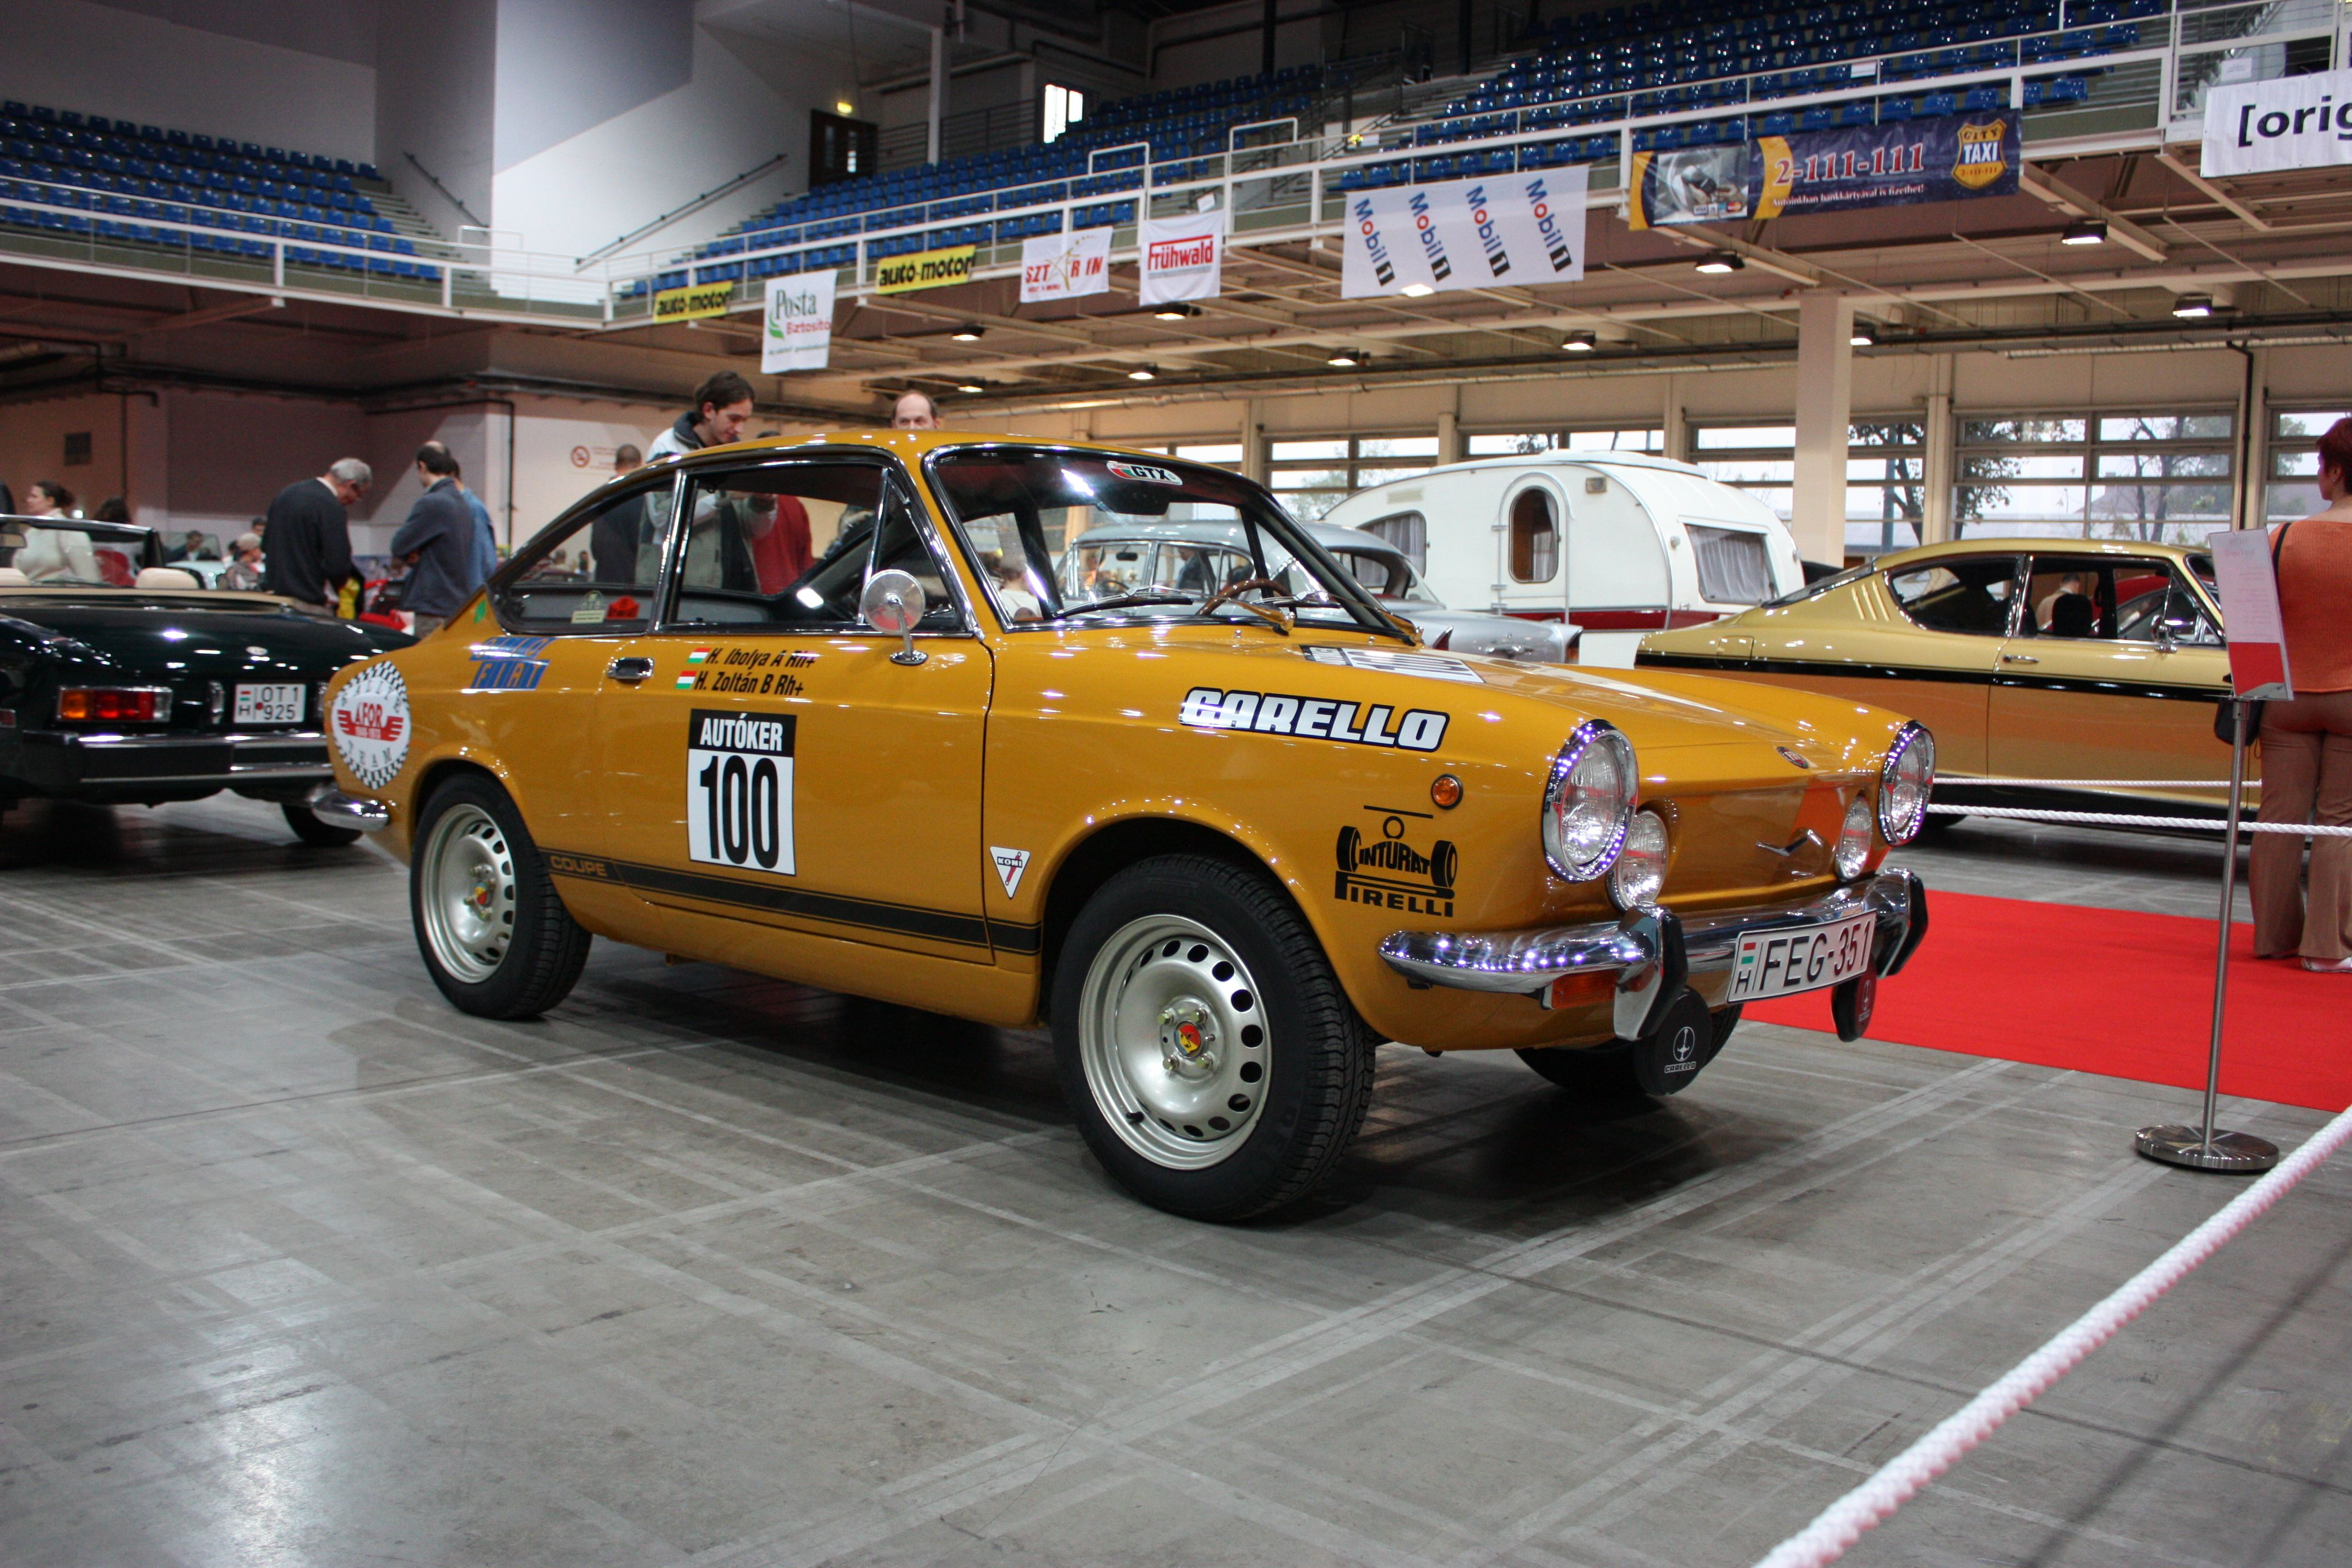 Fiat 850 Sport Coupe Coches Clasicos Vehiculos Coches